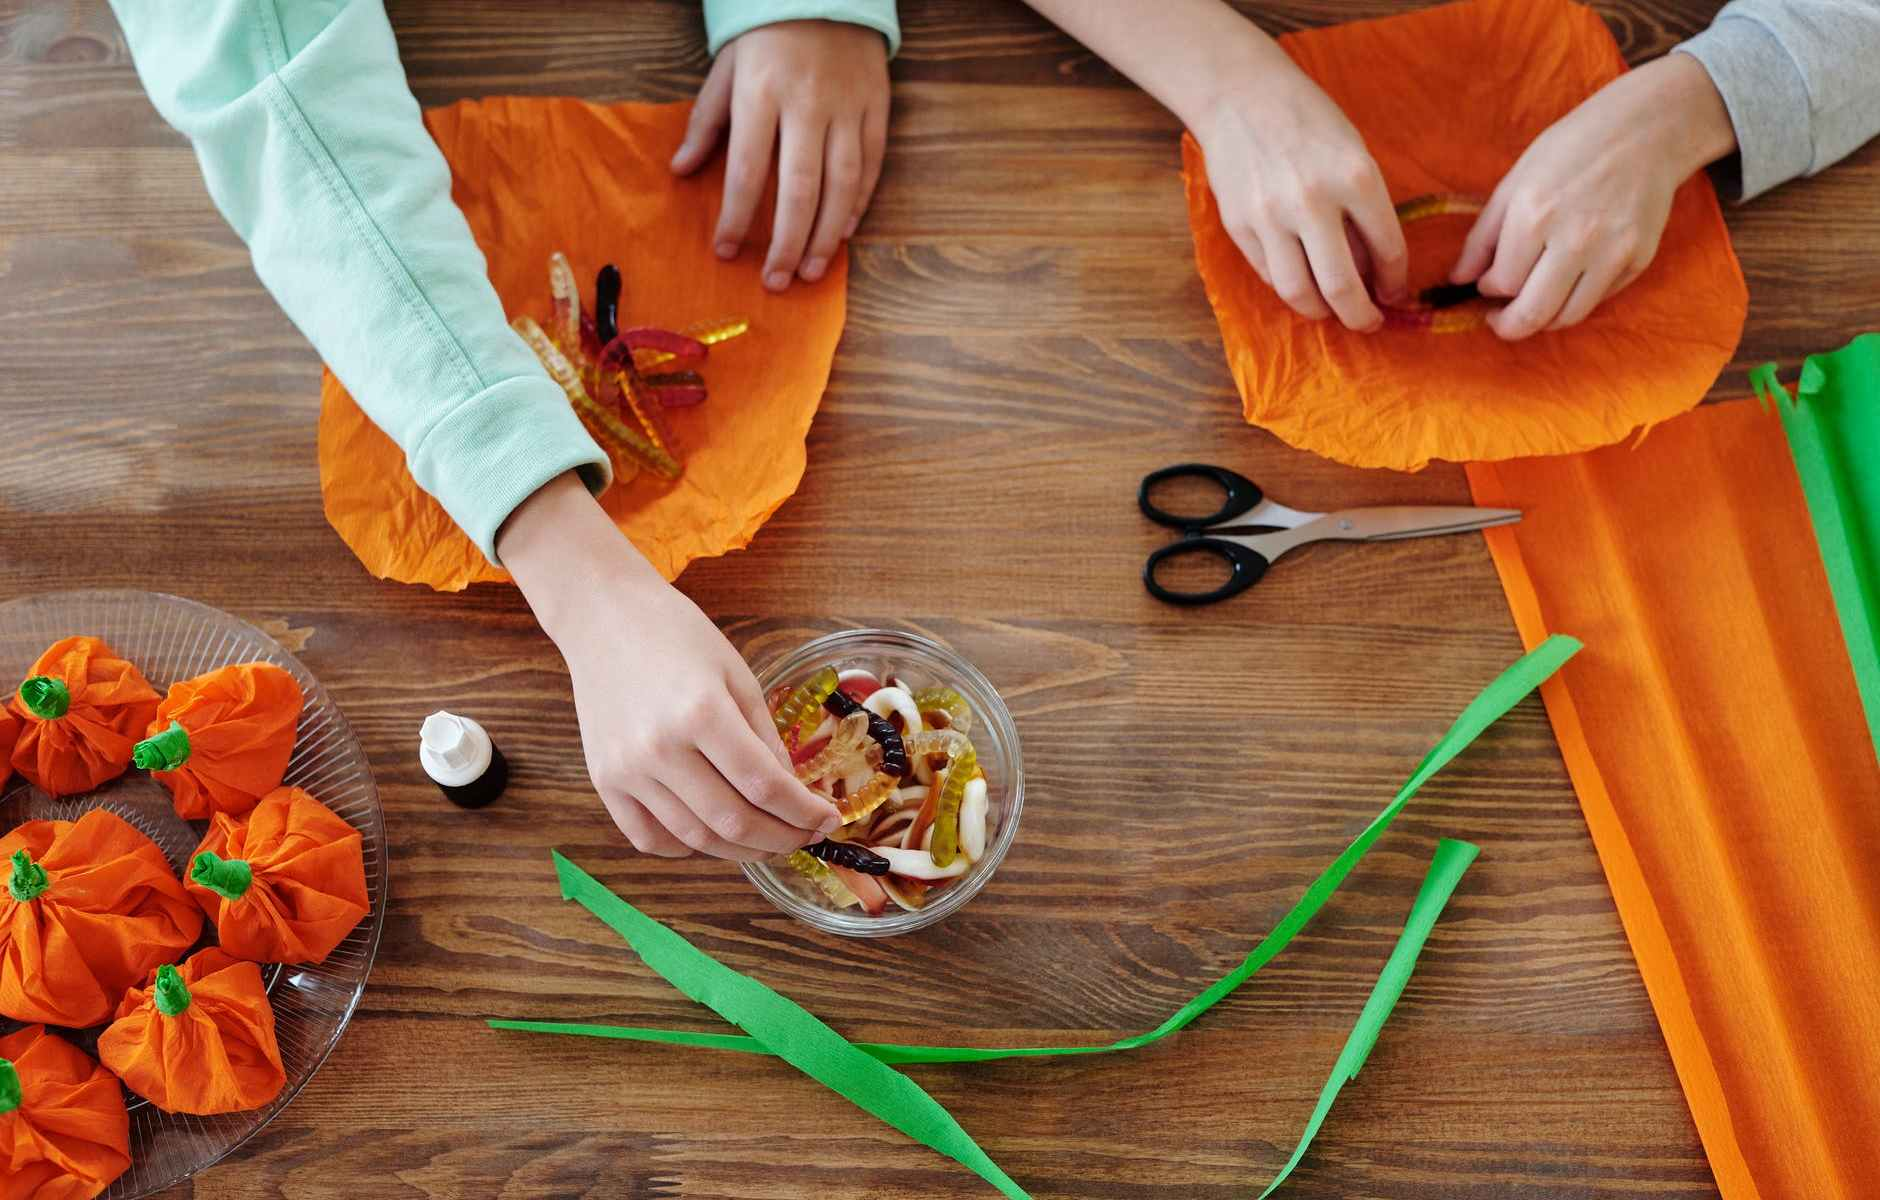 kids wrapping candies in an orange paper